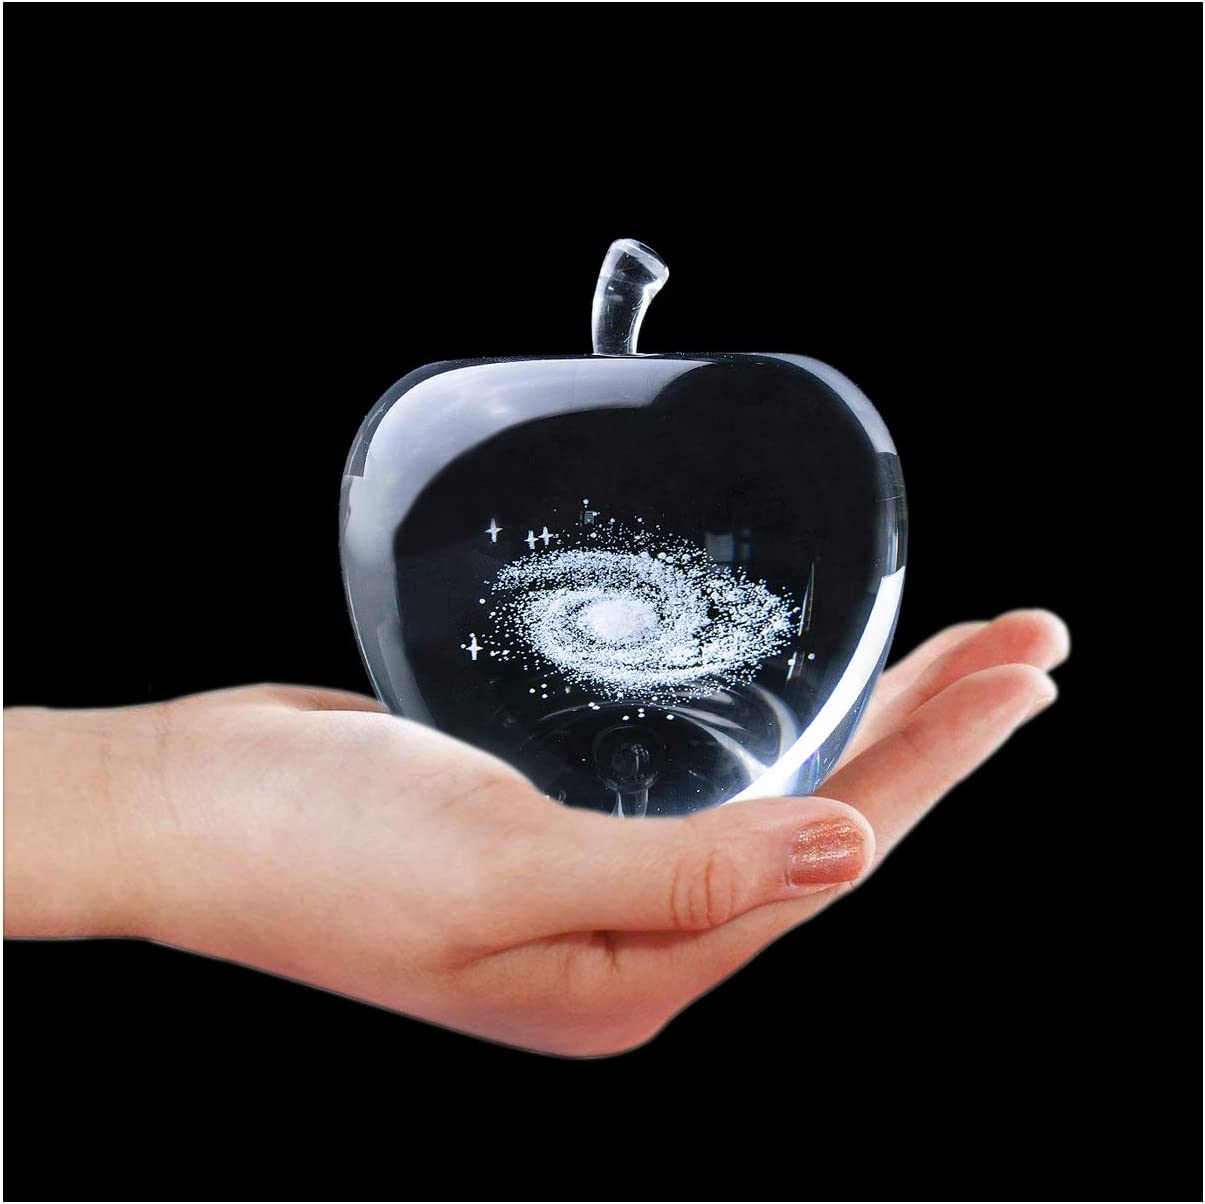 H&D HYALINE & DORA Clear Galaxy Crystal Glass Apple Paperweight